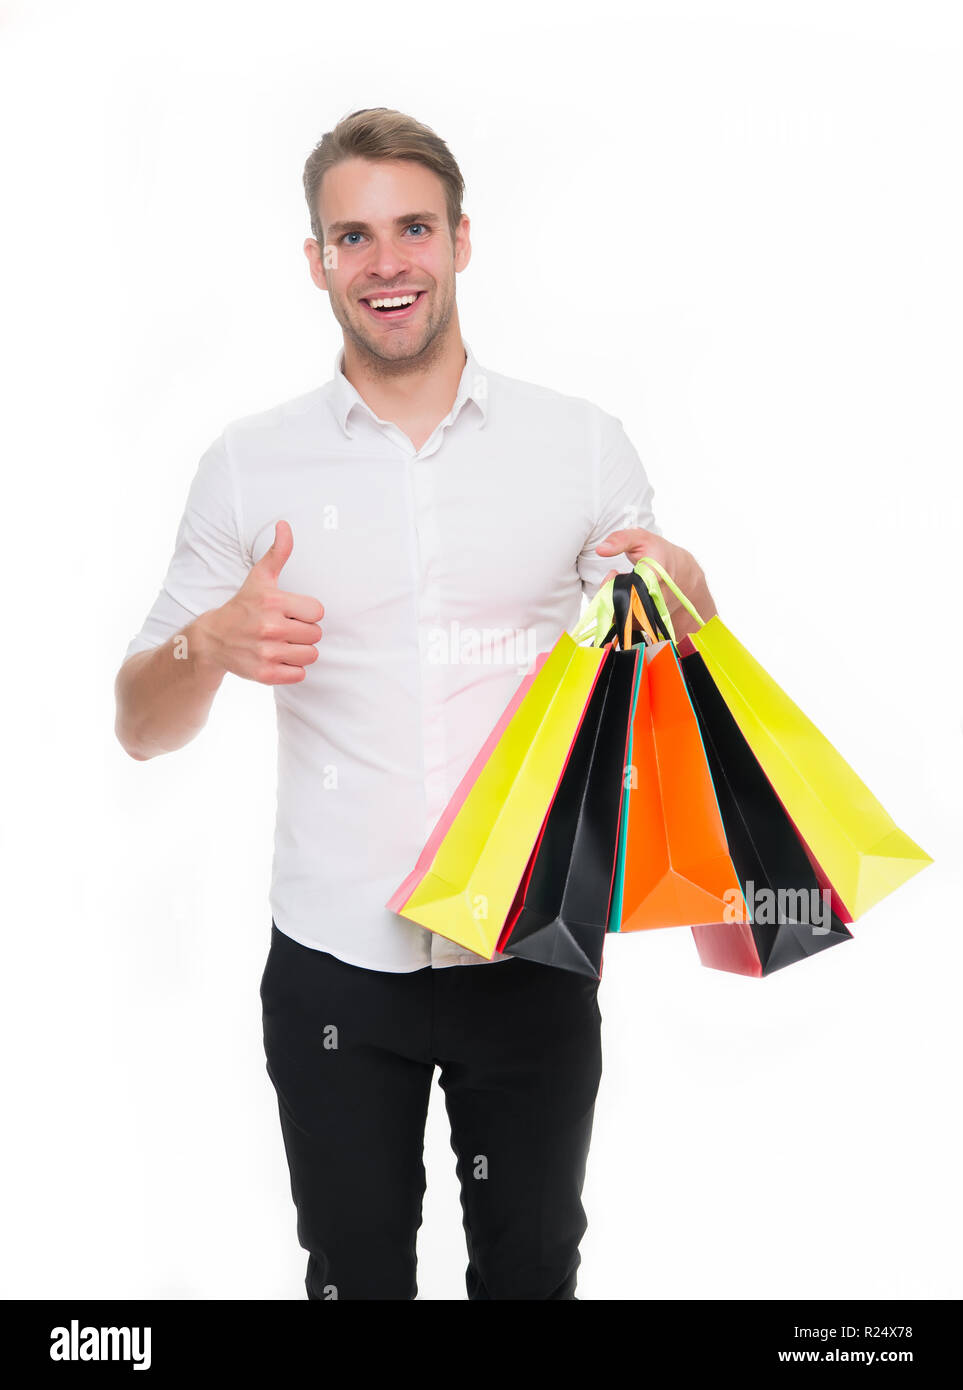 Black friday sale concept. Man formal clothes carry shopping bags. Guy happy carry bunch shopping bags. Profitable deals on black friday. Man hold lot paper bags packages after shopping in mall. Stock Photo